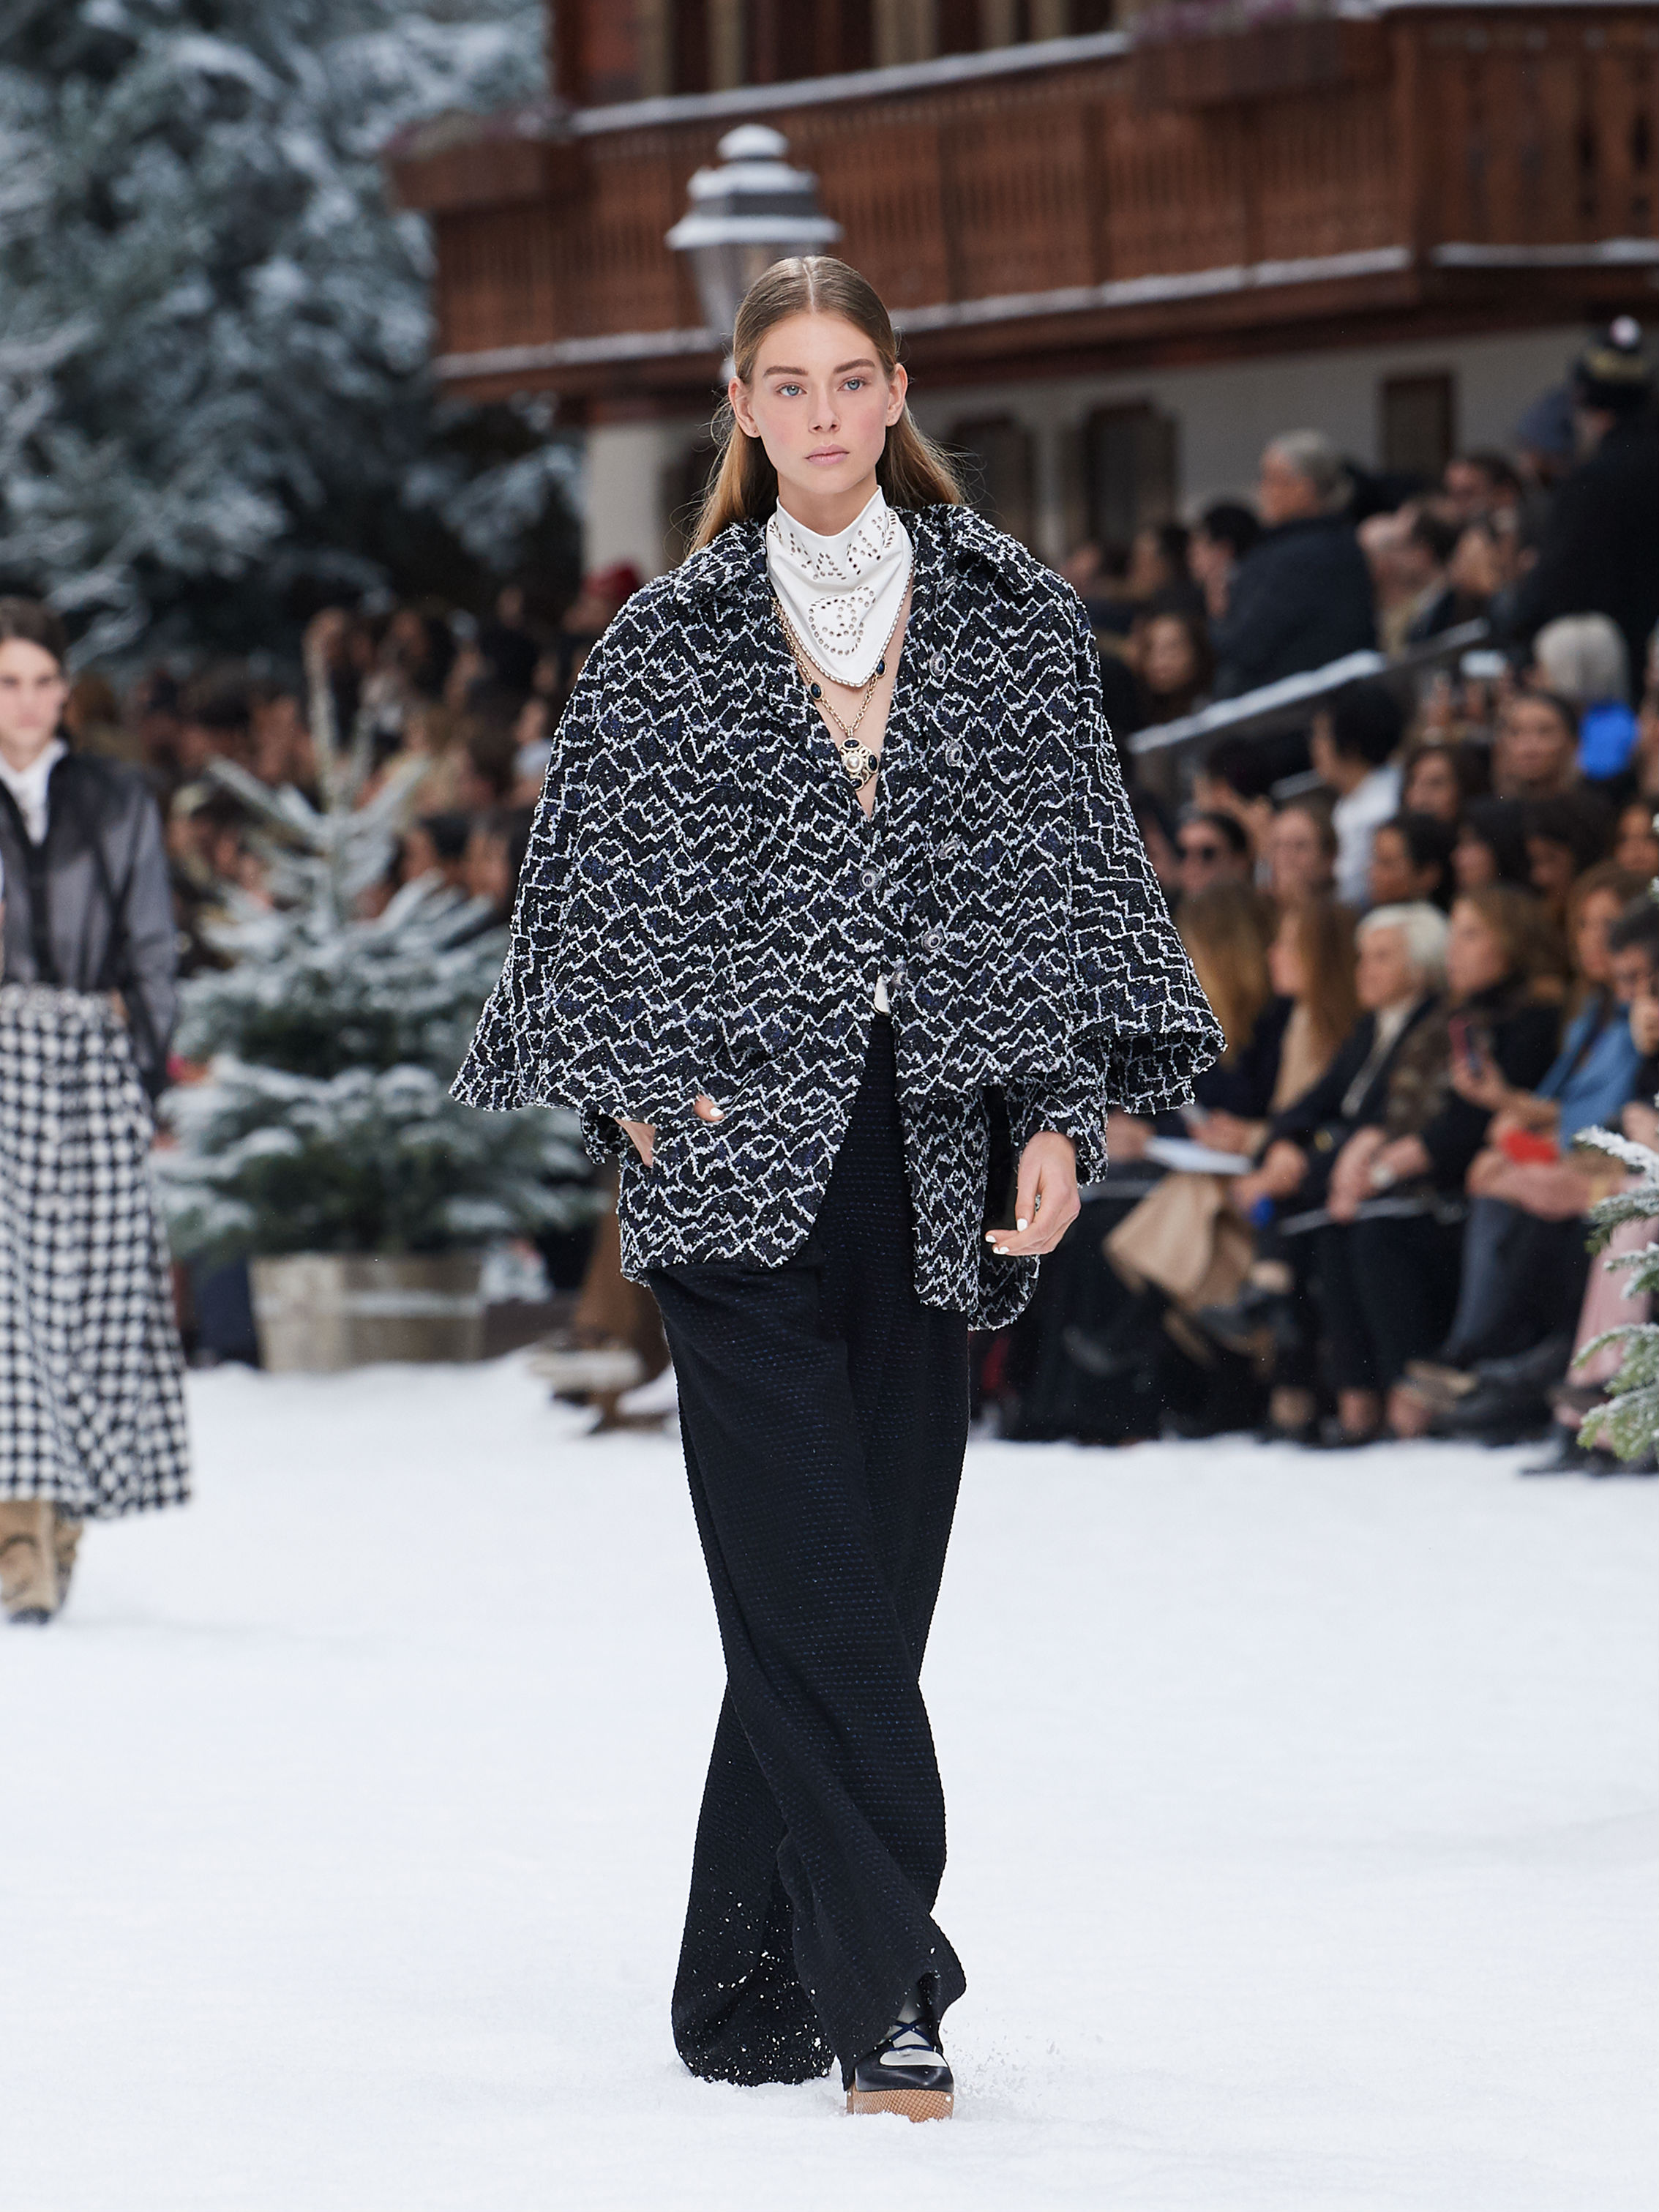 FALL-WINTER 201920 READY-TO-WEAR COLLECTION (7)